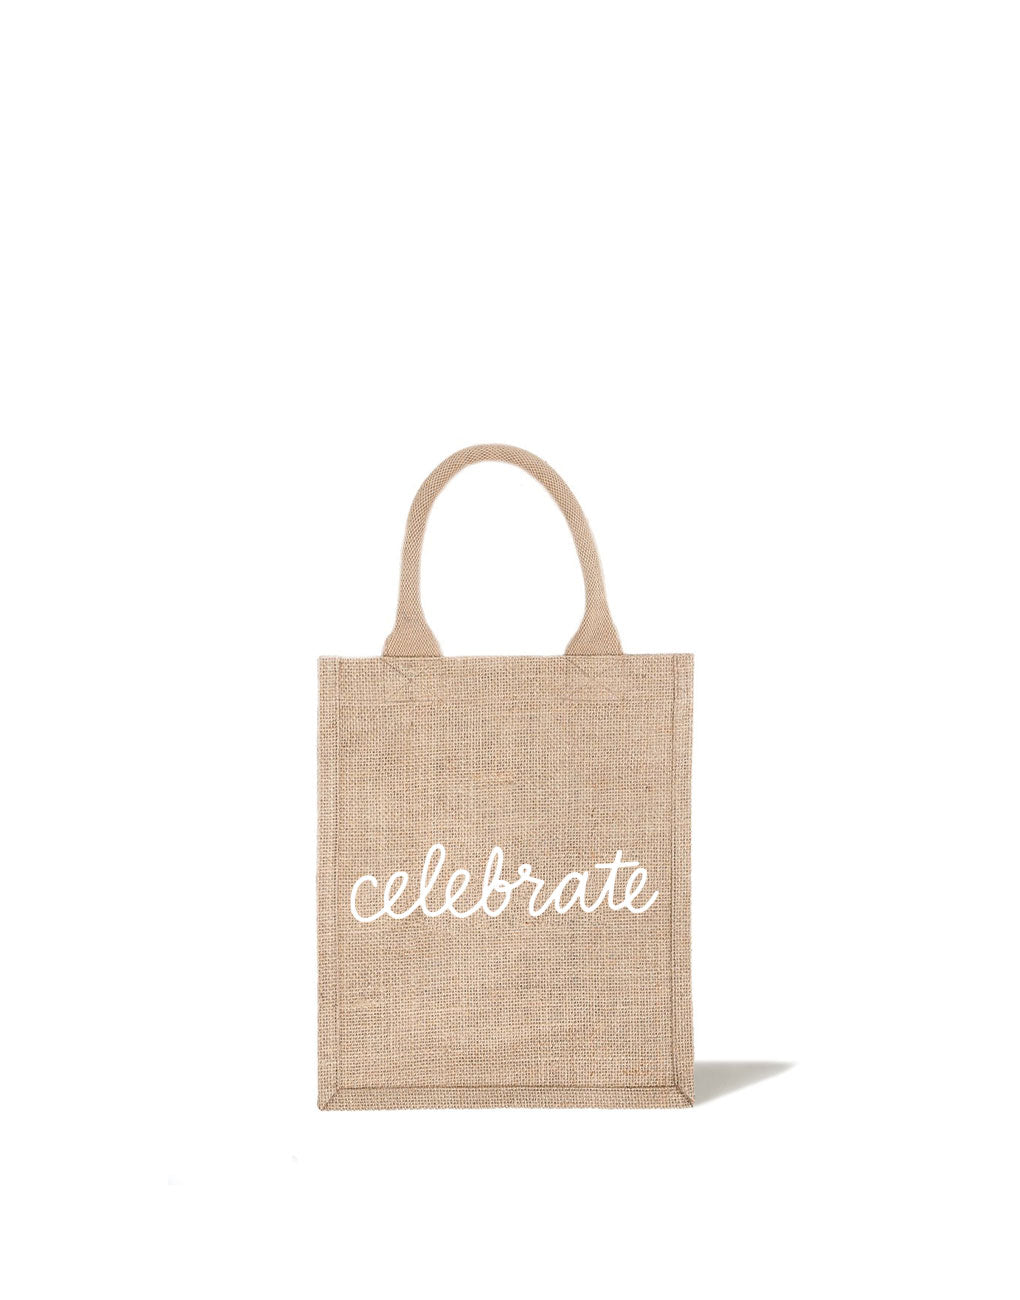 Medium Celebrate Reusable Gift Tote In White Font | The Little Market